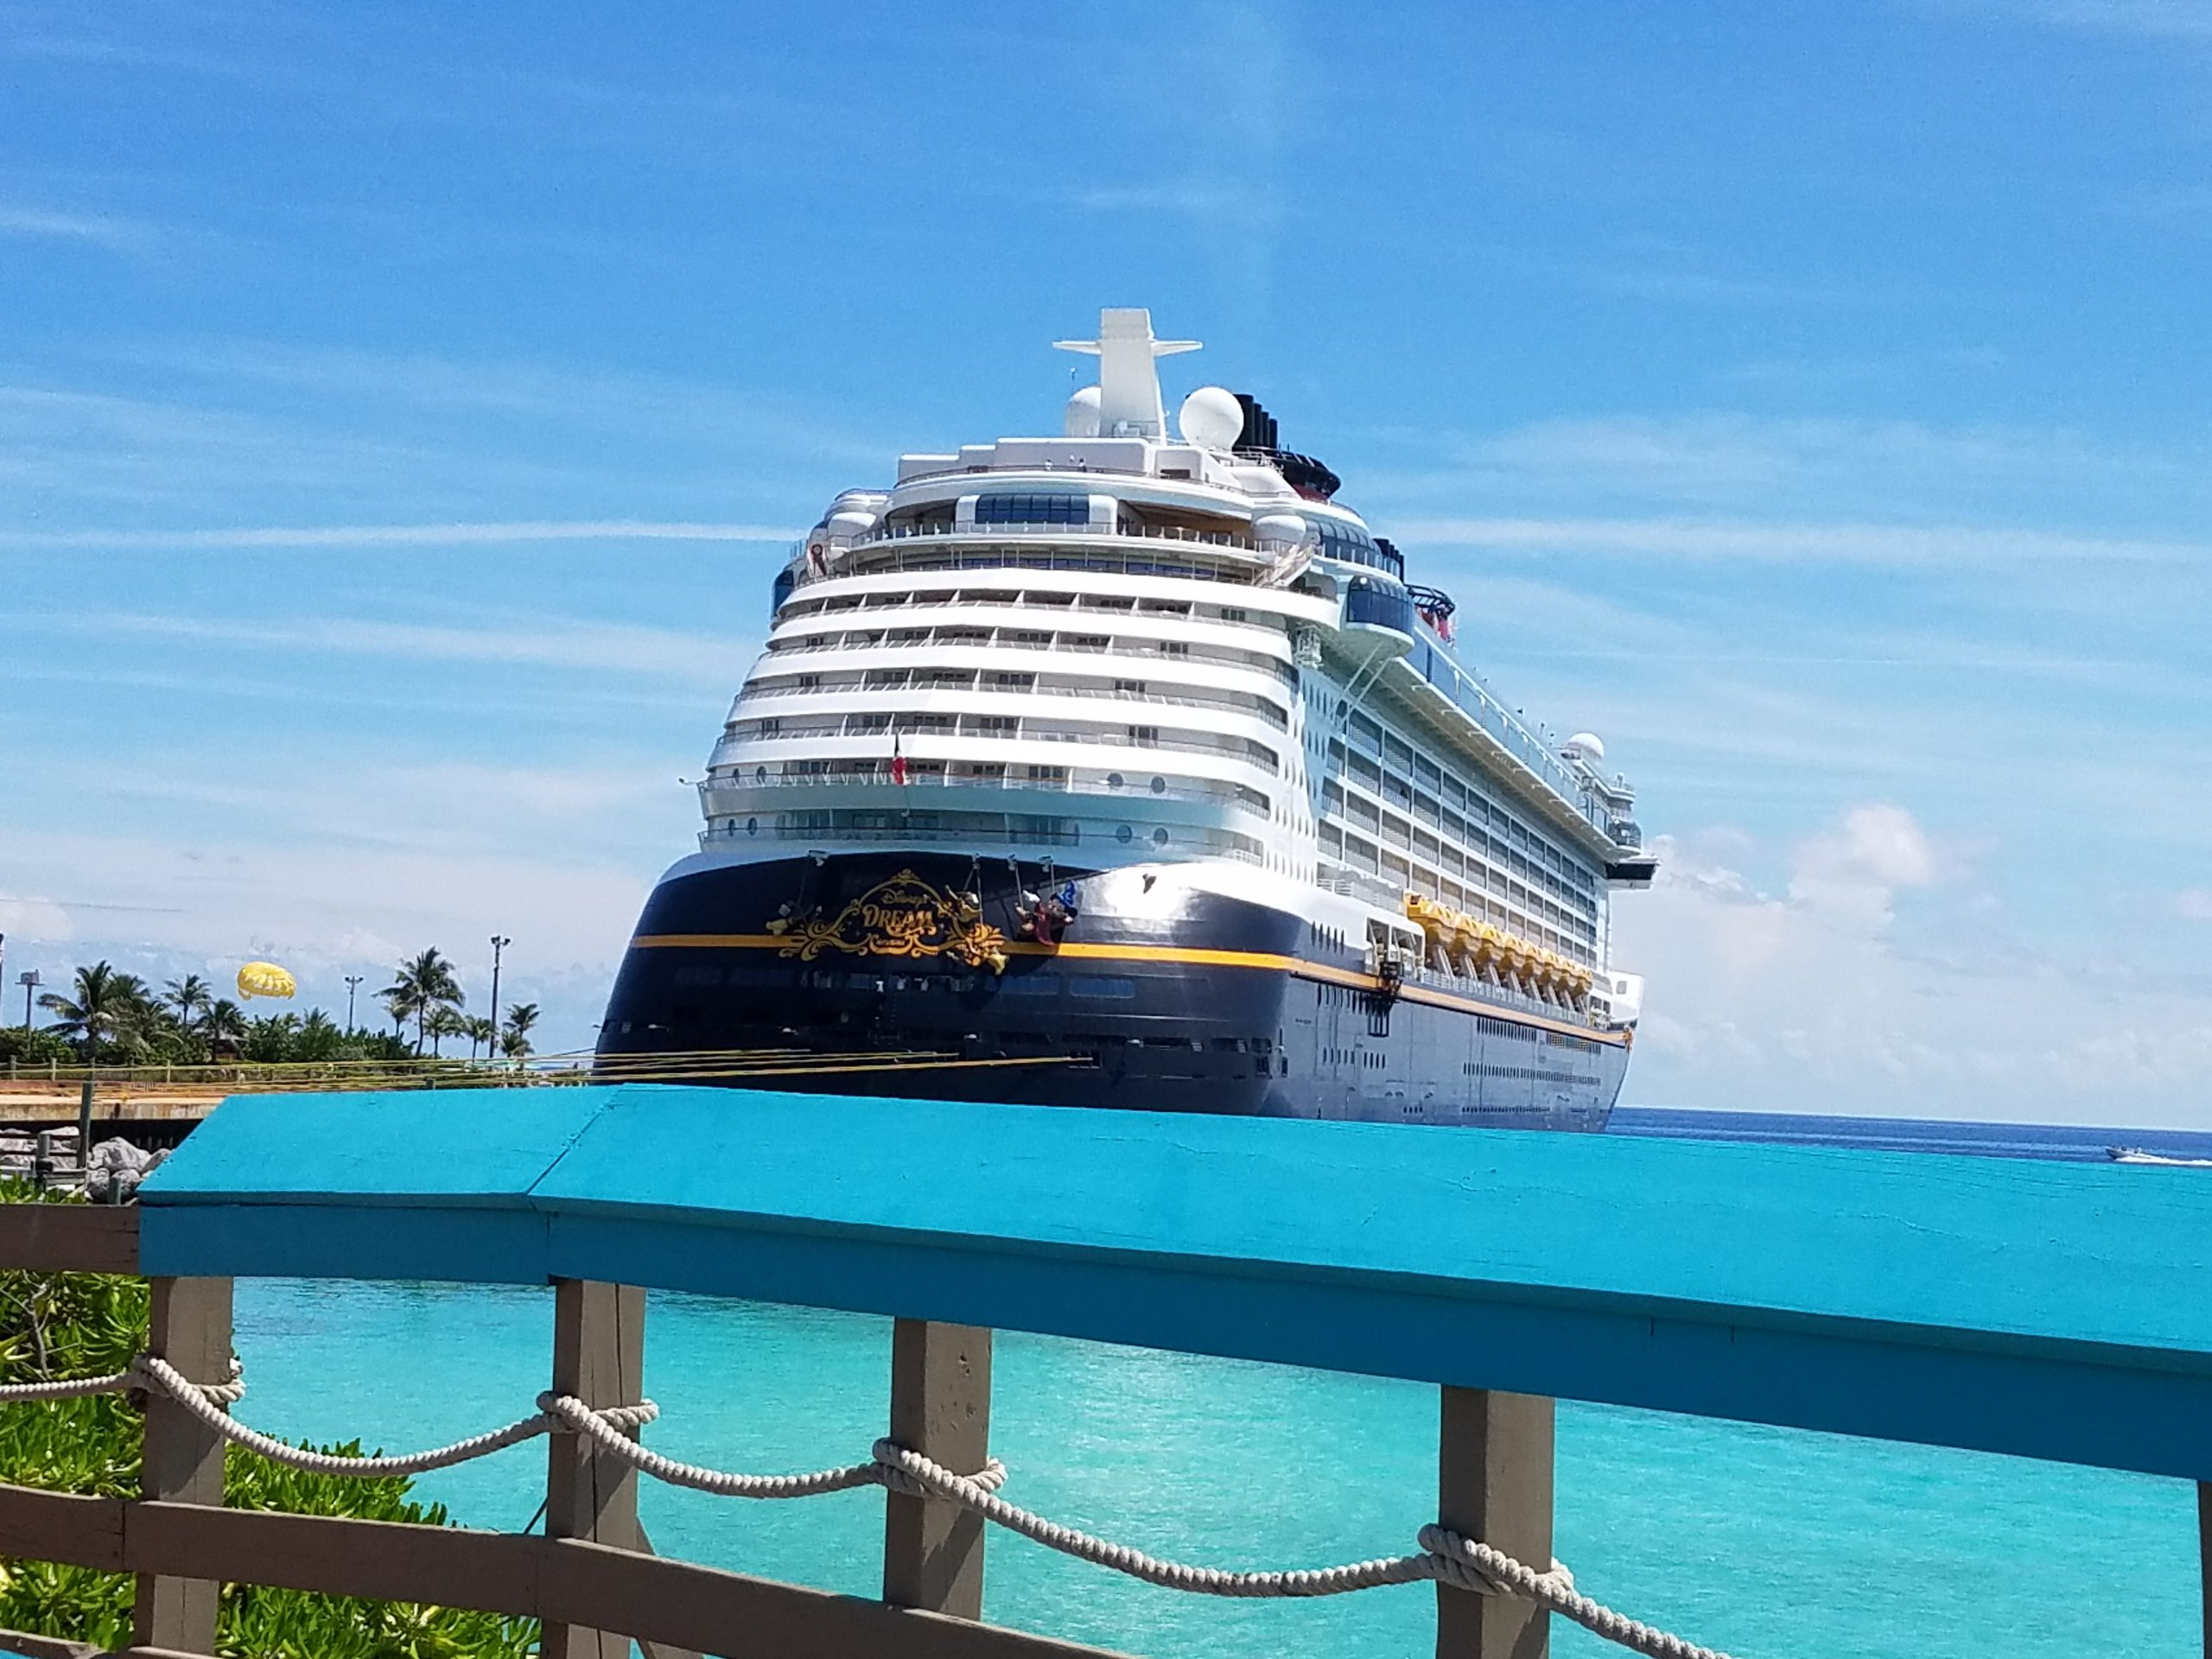 The Disney Dream in port at Castaway Cay.